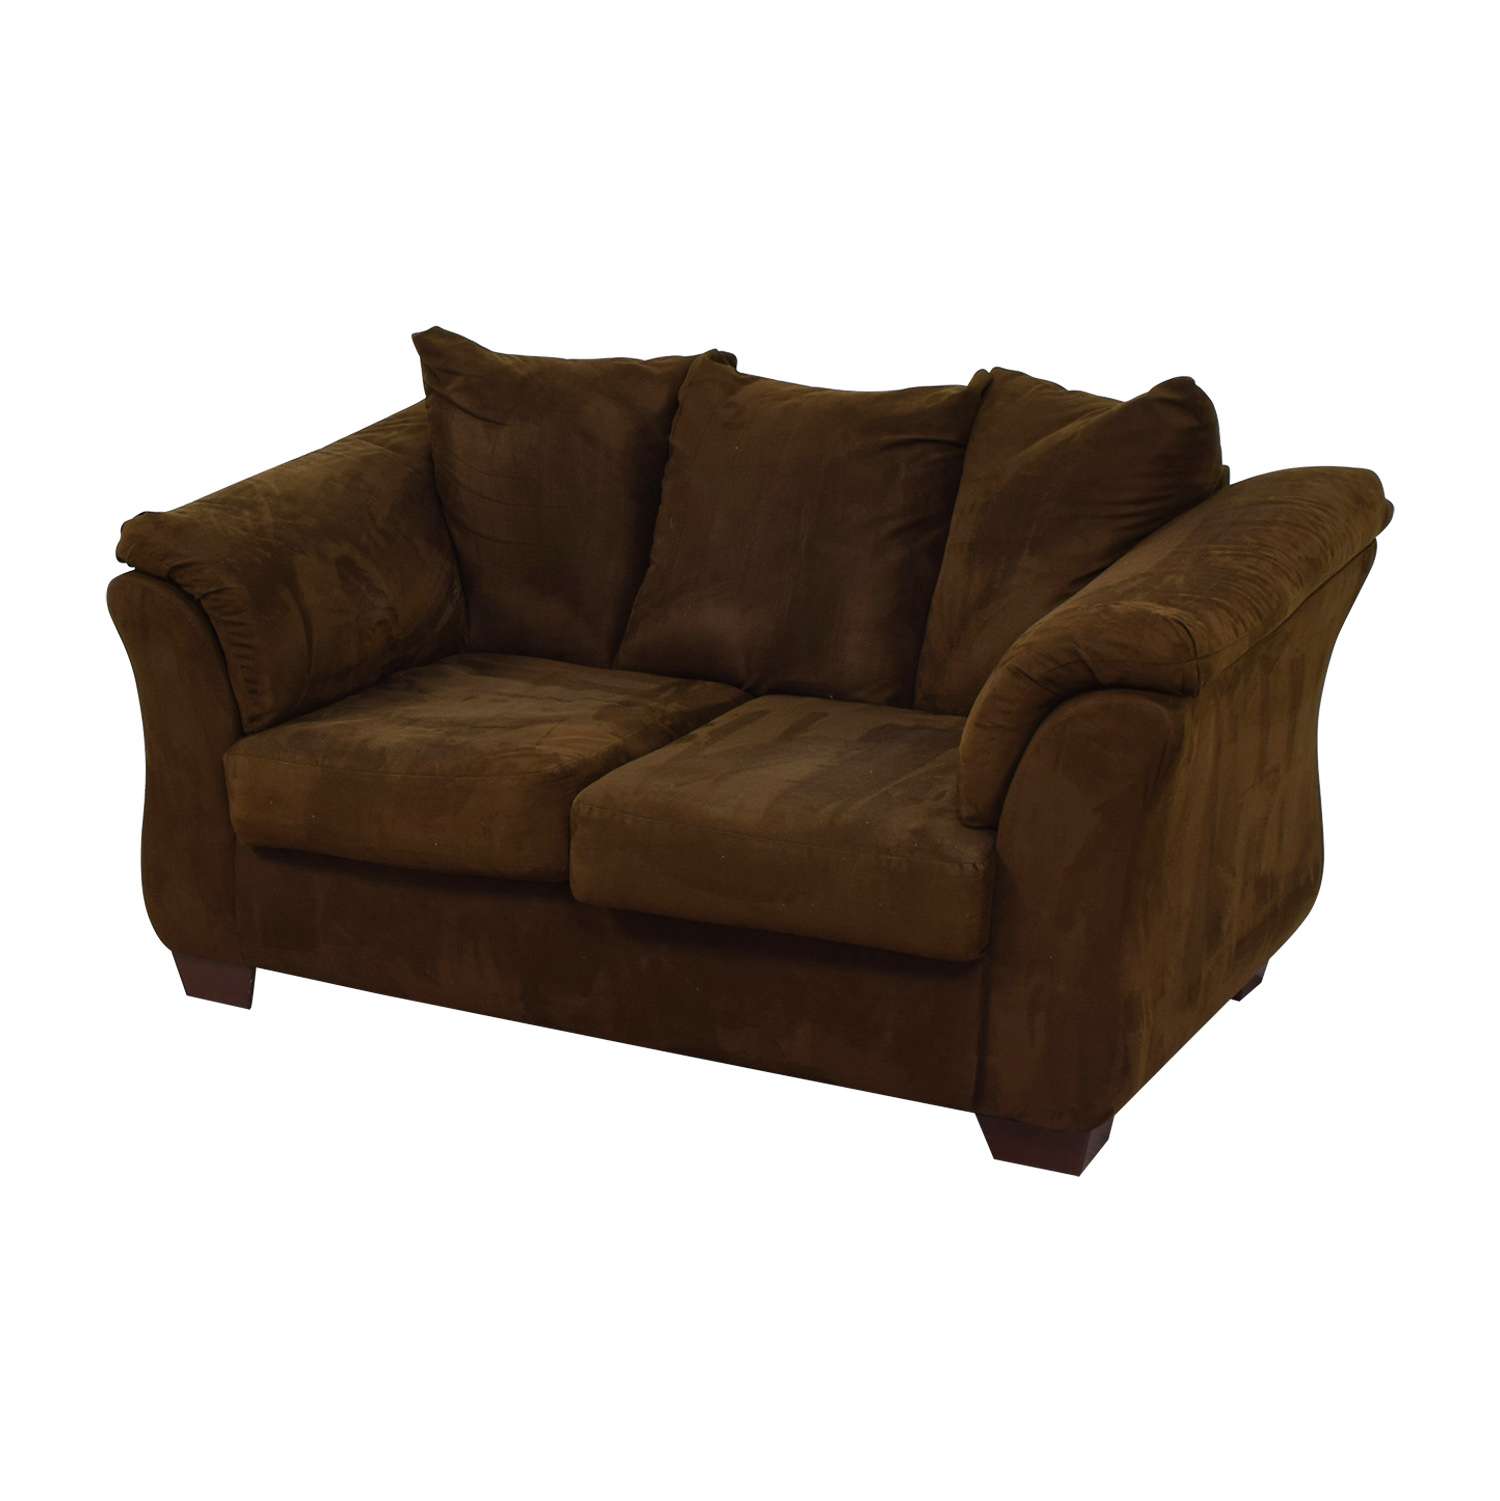 Loveseat Sofa Bed Ashley Furniture: Ashley Furniture Ashley Furniture Two- Cushion